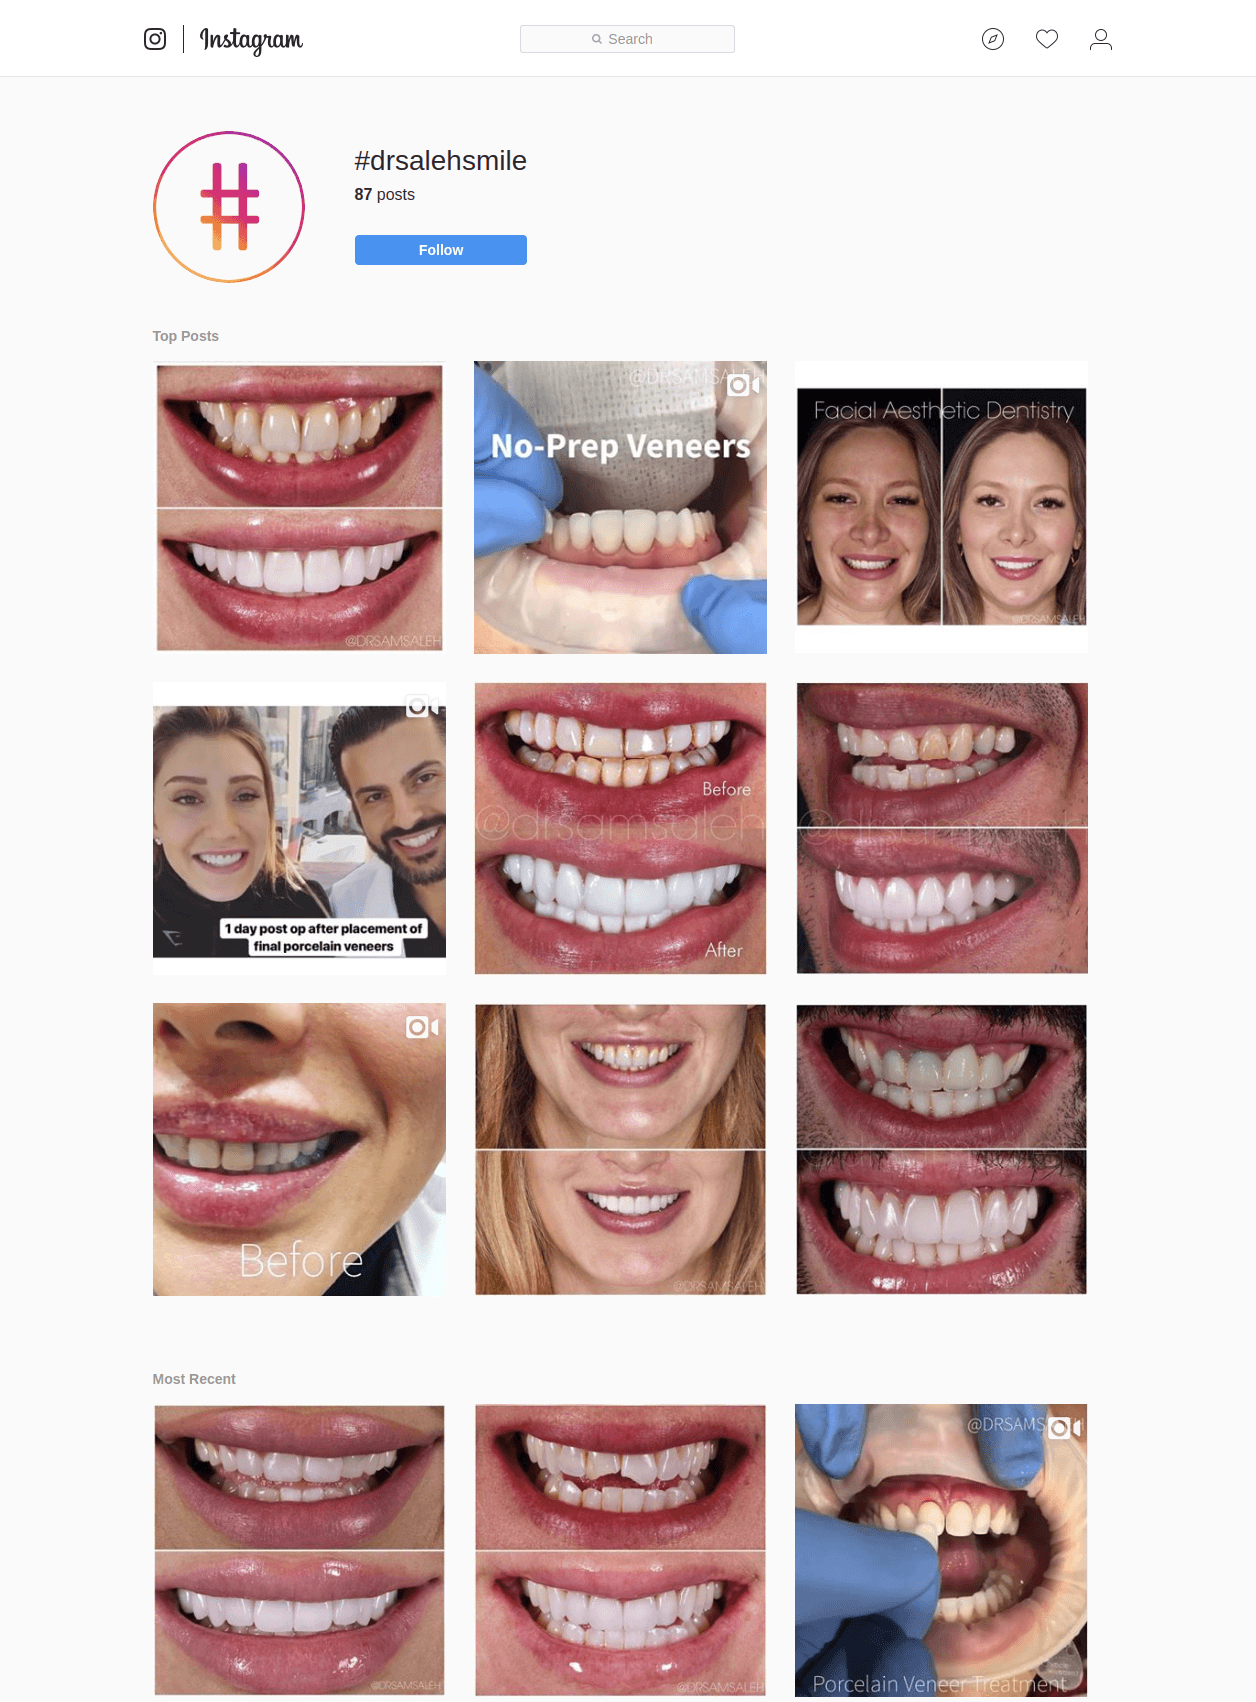 How To Powerfully Use Instagram To Market Your Dental Practice